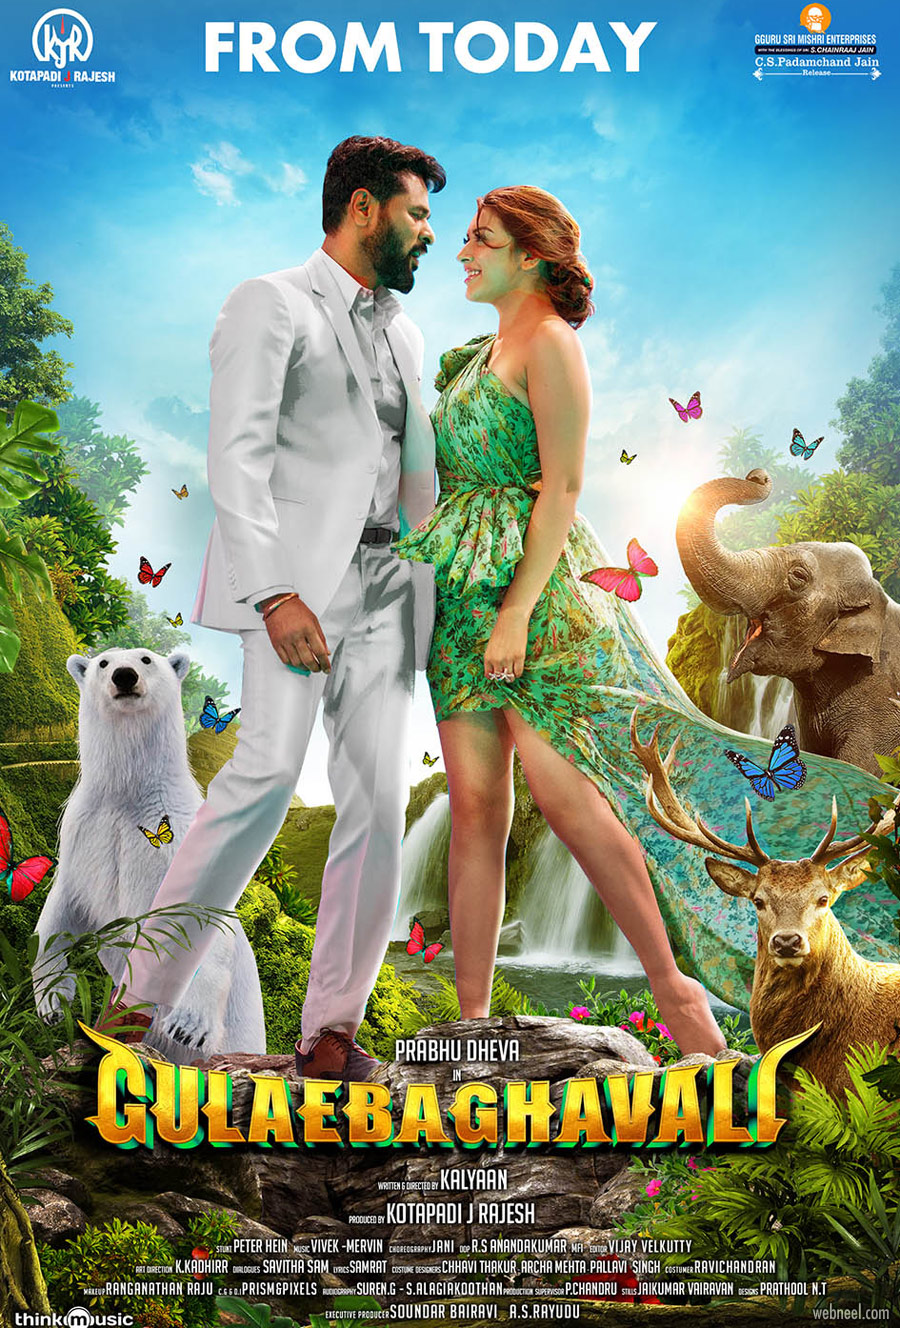 movie poster design india tamil gulebakavali